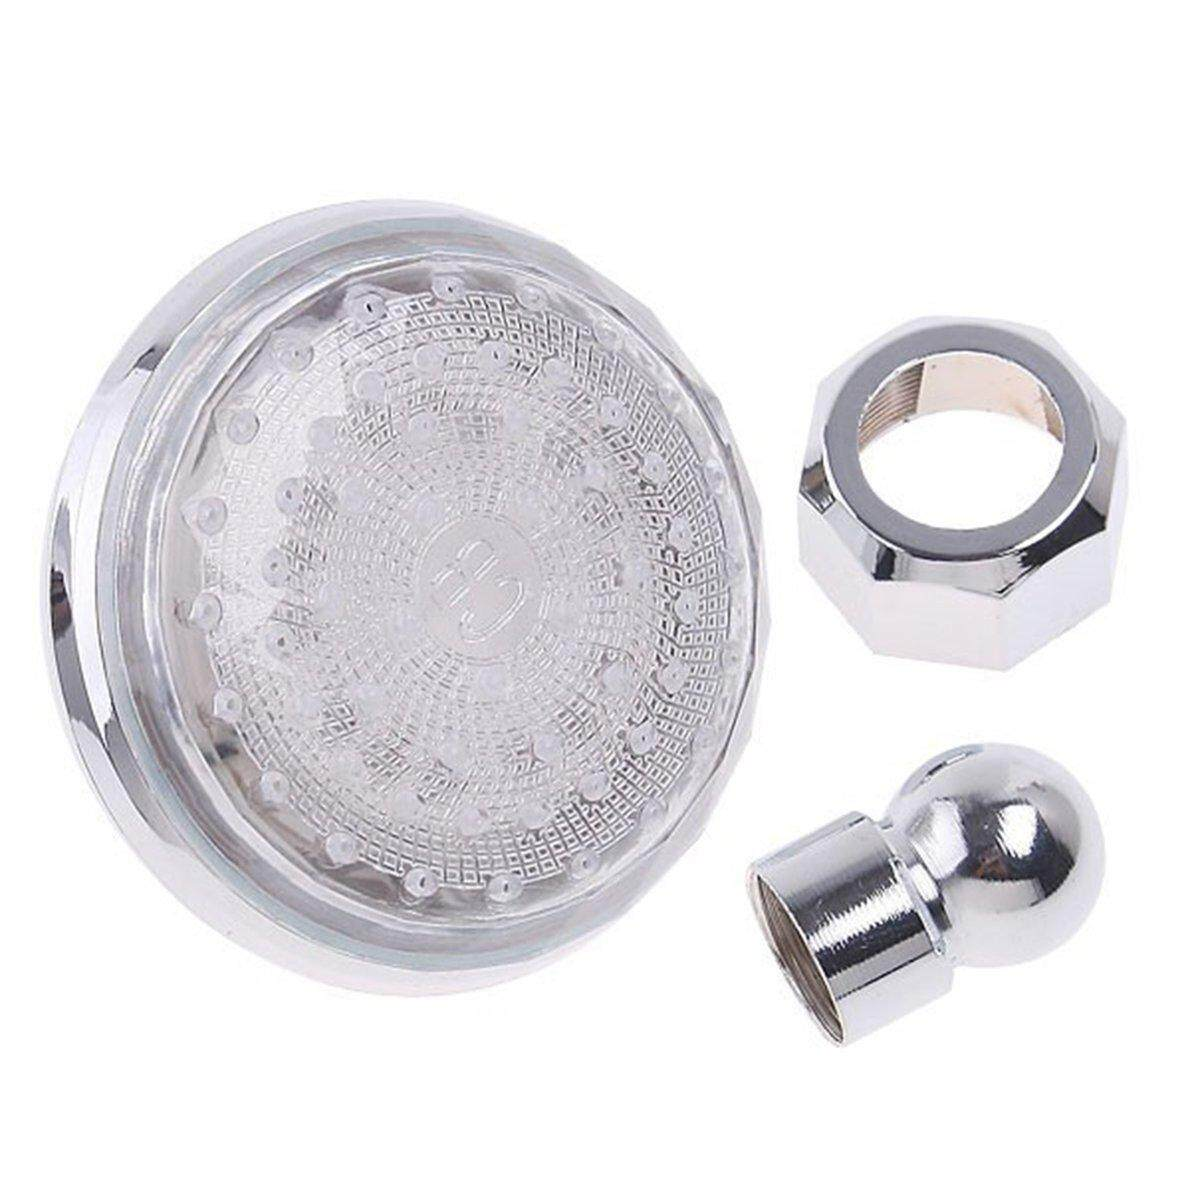 Top Sale Led Small Top Spray Flashing Round With Pattern Small Top Spray Ld8010-A2